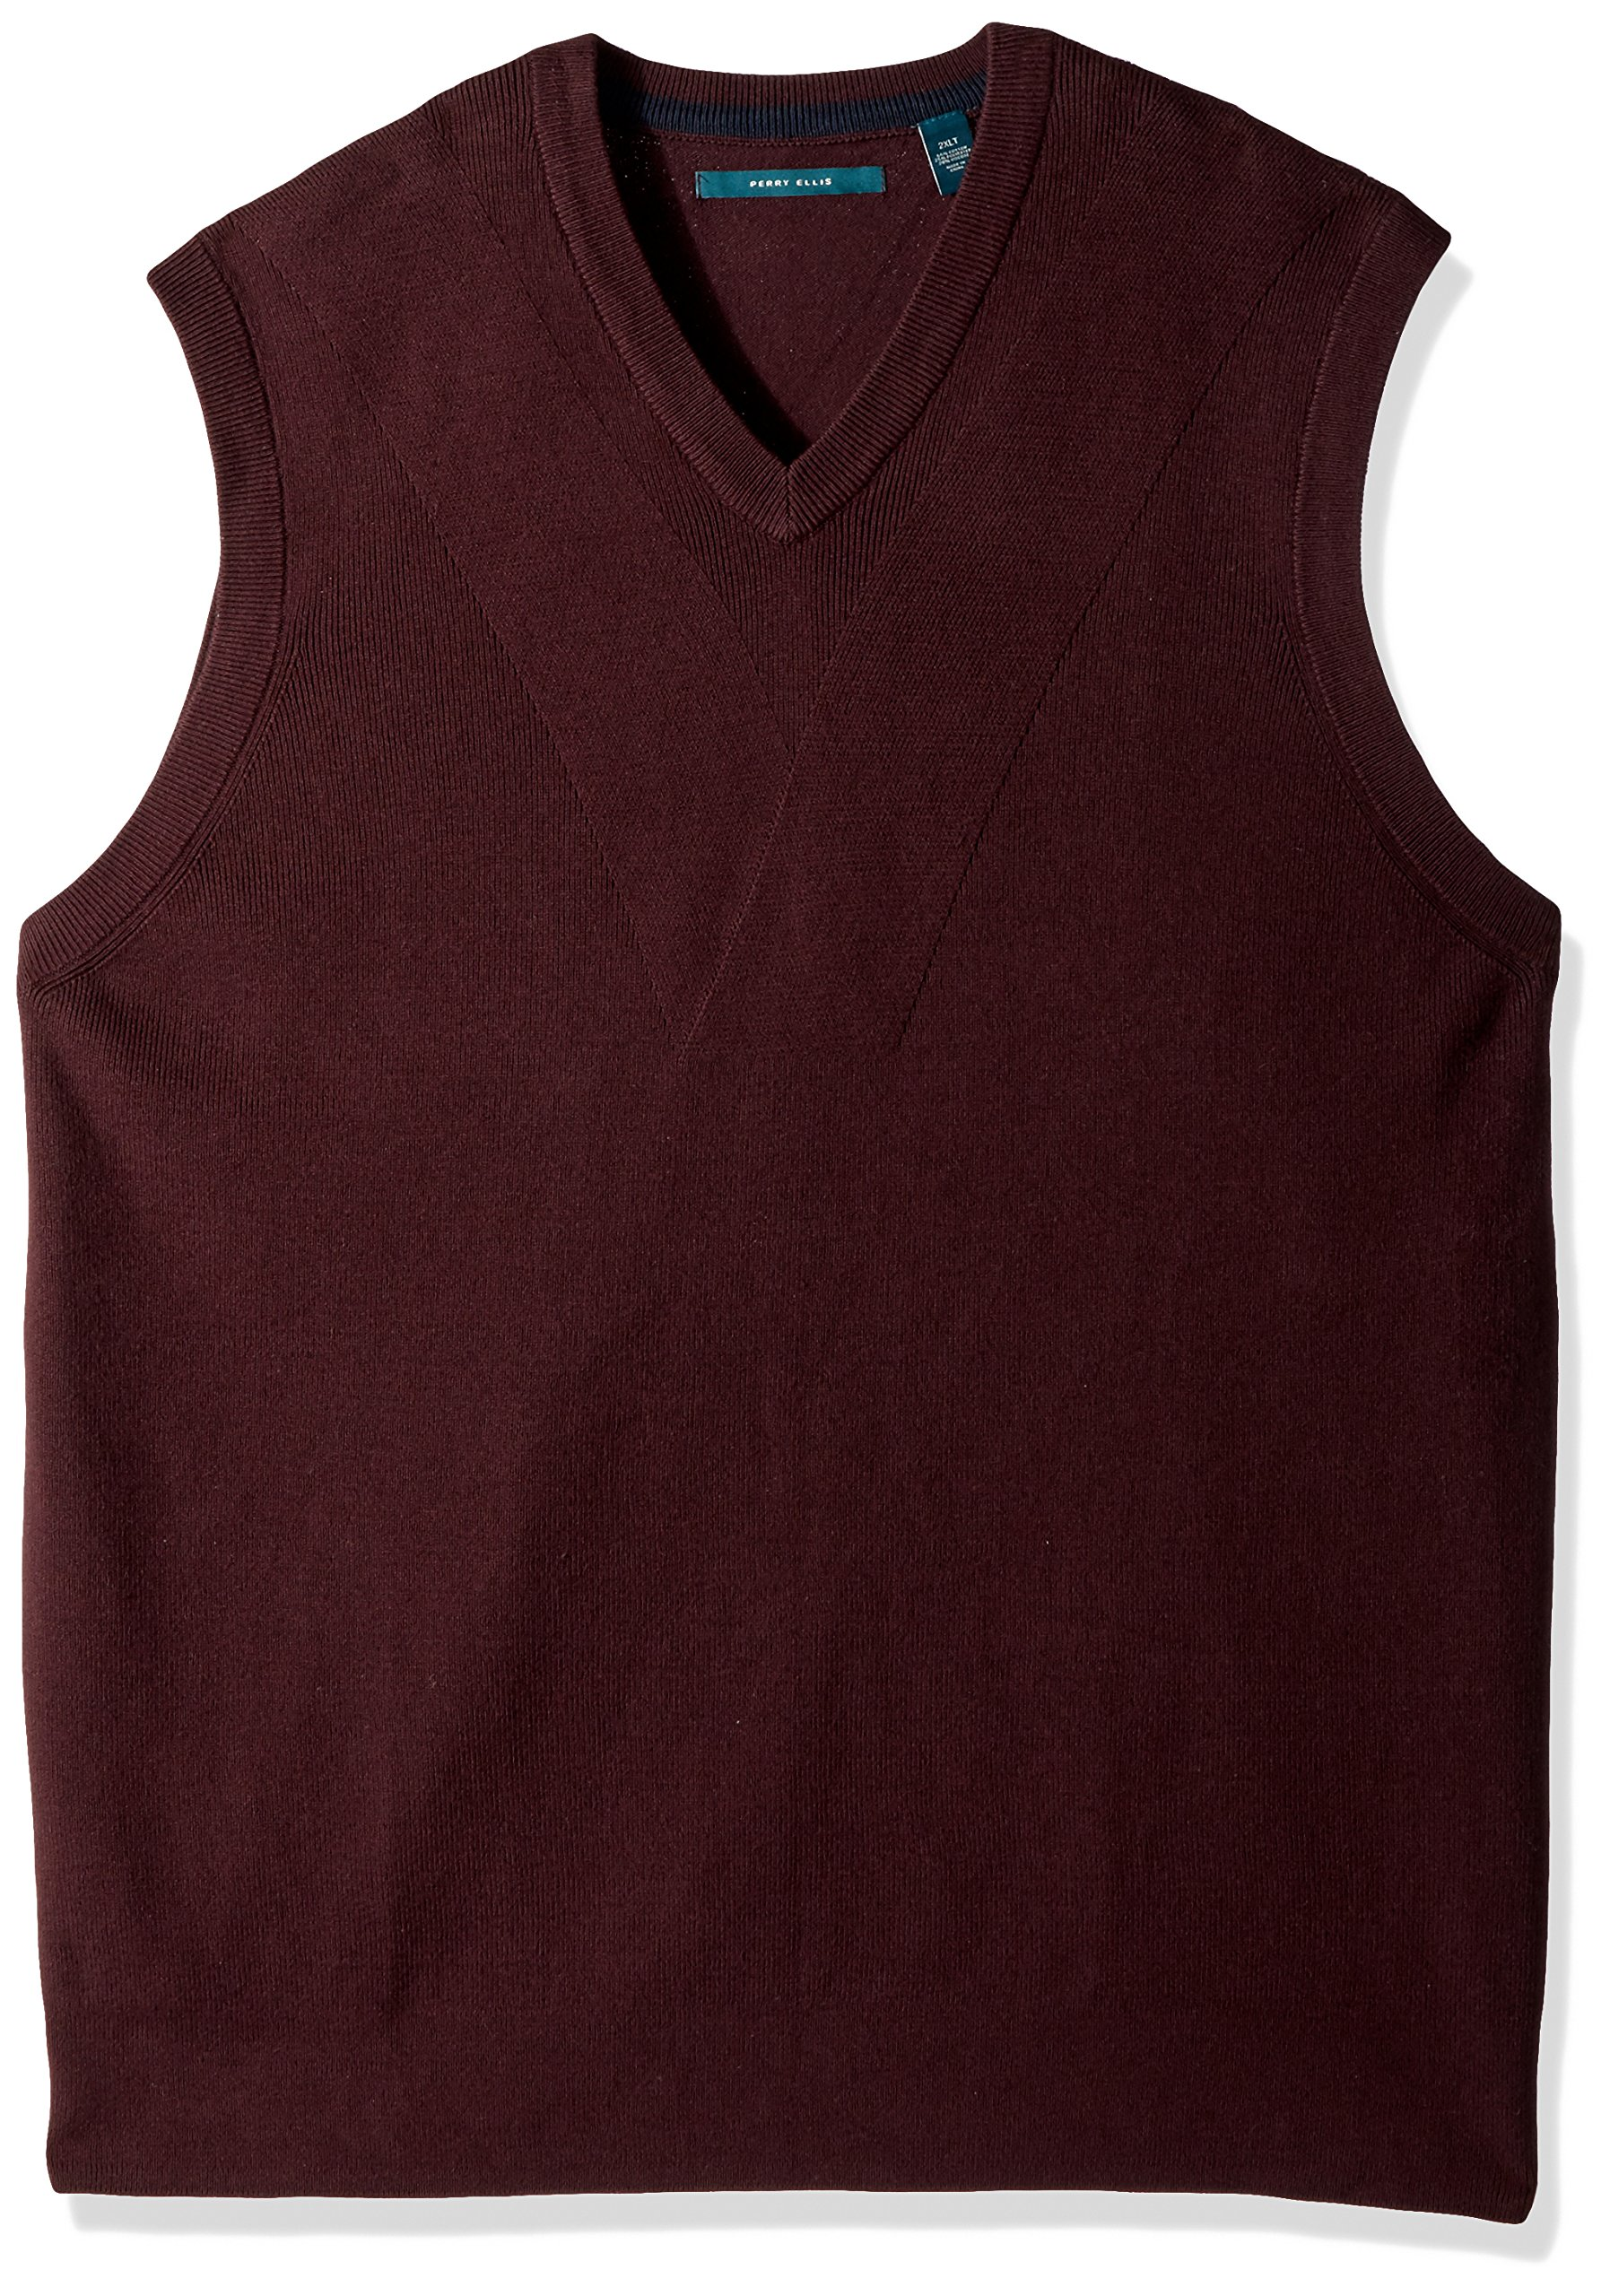 Perry Ellis Men's Big and Tall Pullover V-Neck Sweater Vest, Port, 3X